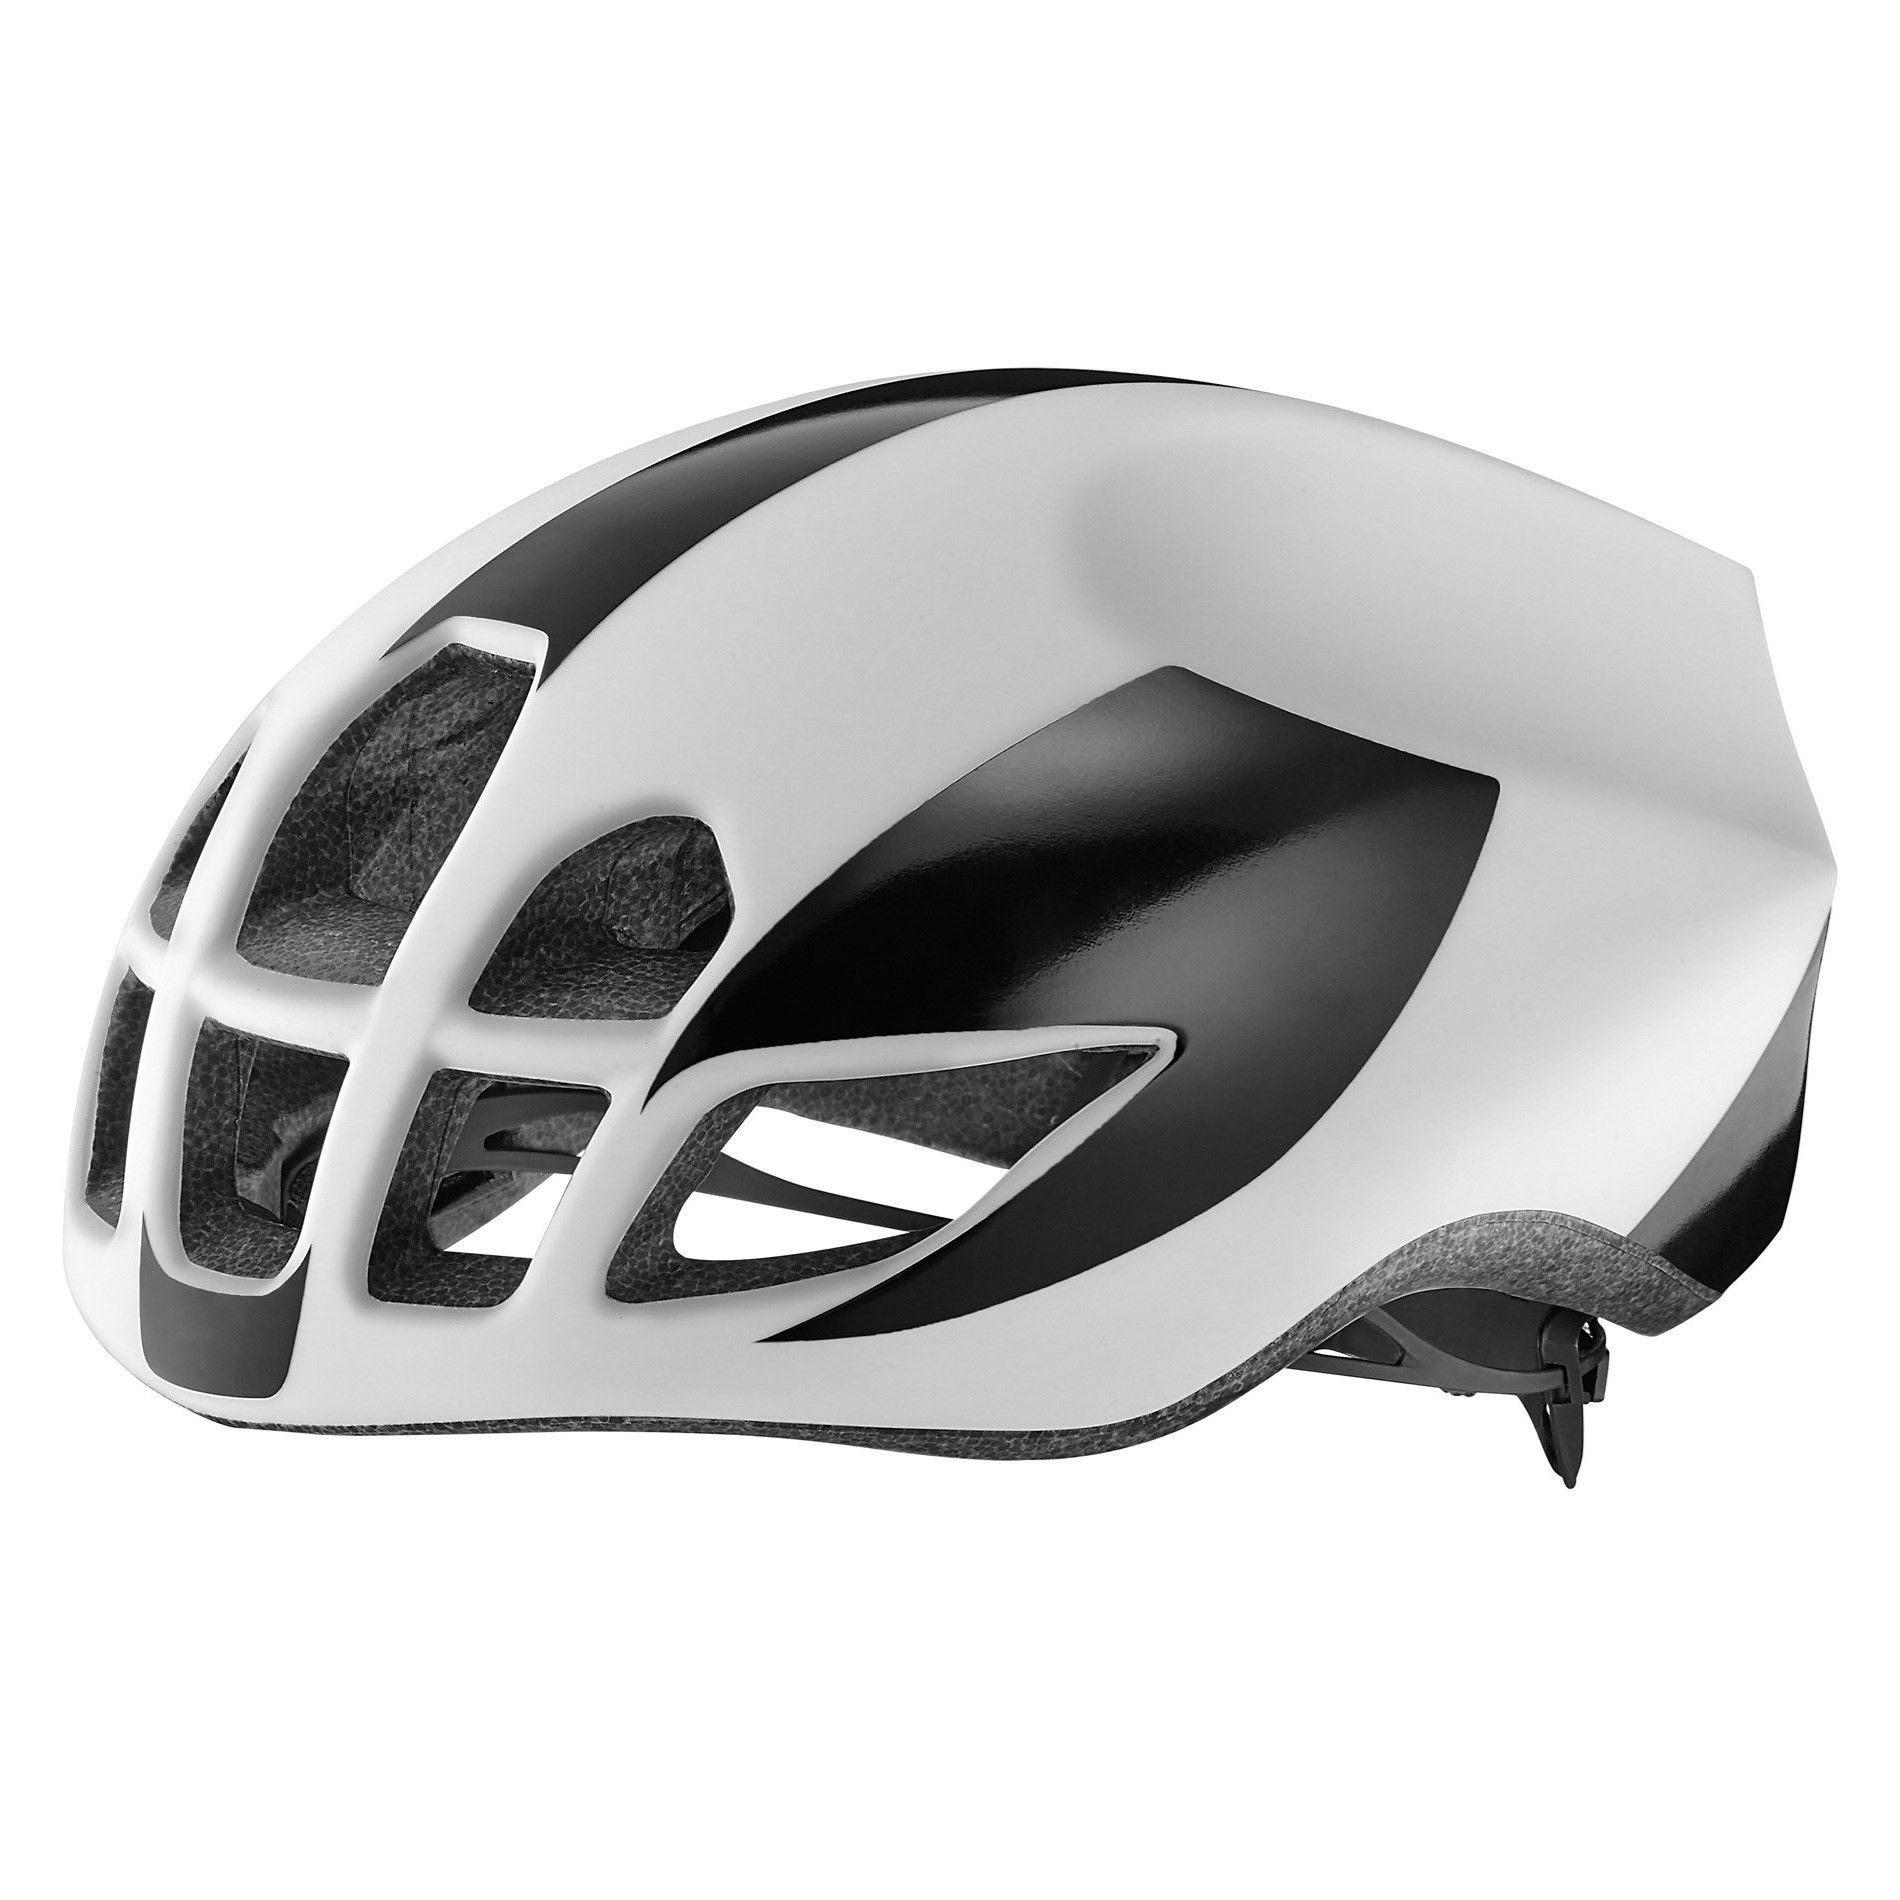 Pursuit Helmet